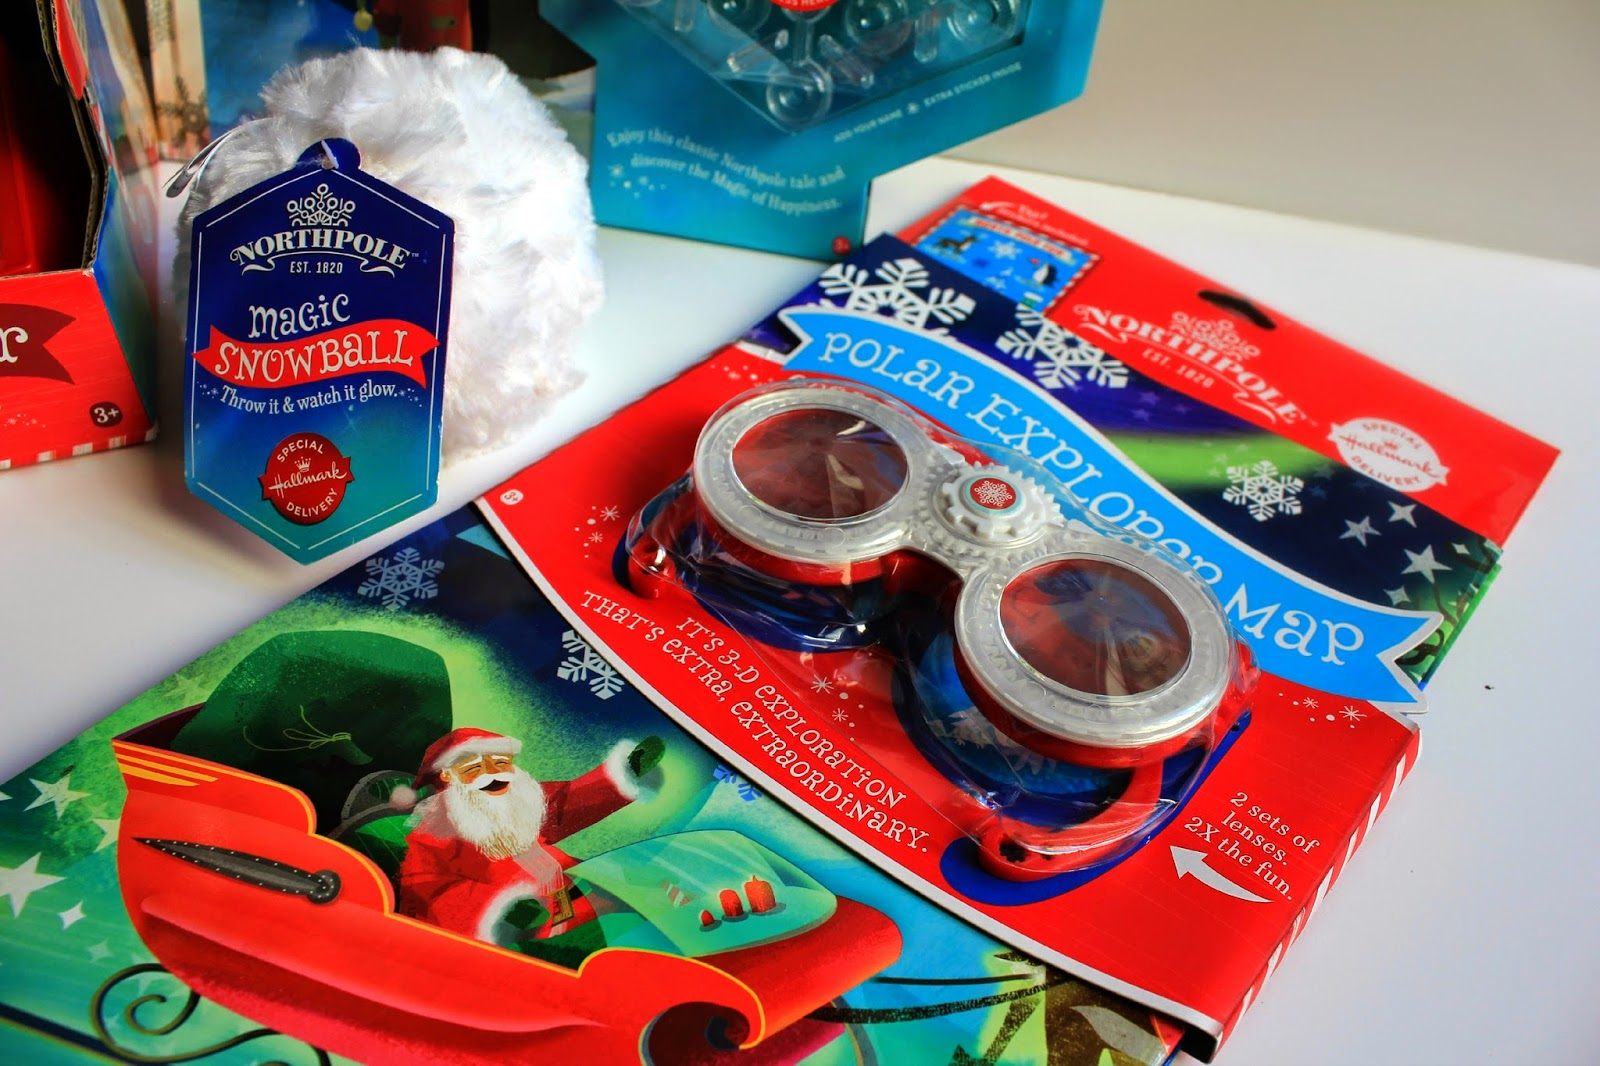 Northpole Christmas gift ideas from the Elf on the Shelf! #NorthpoleFun #ad